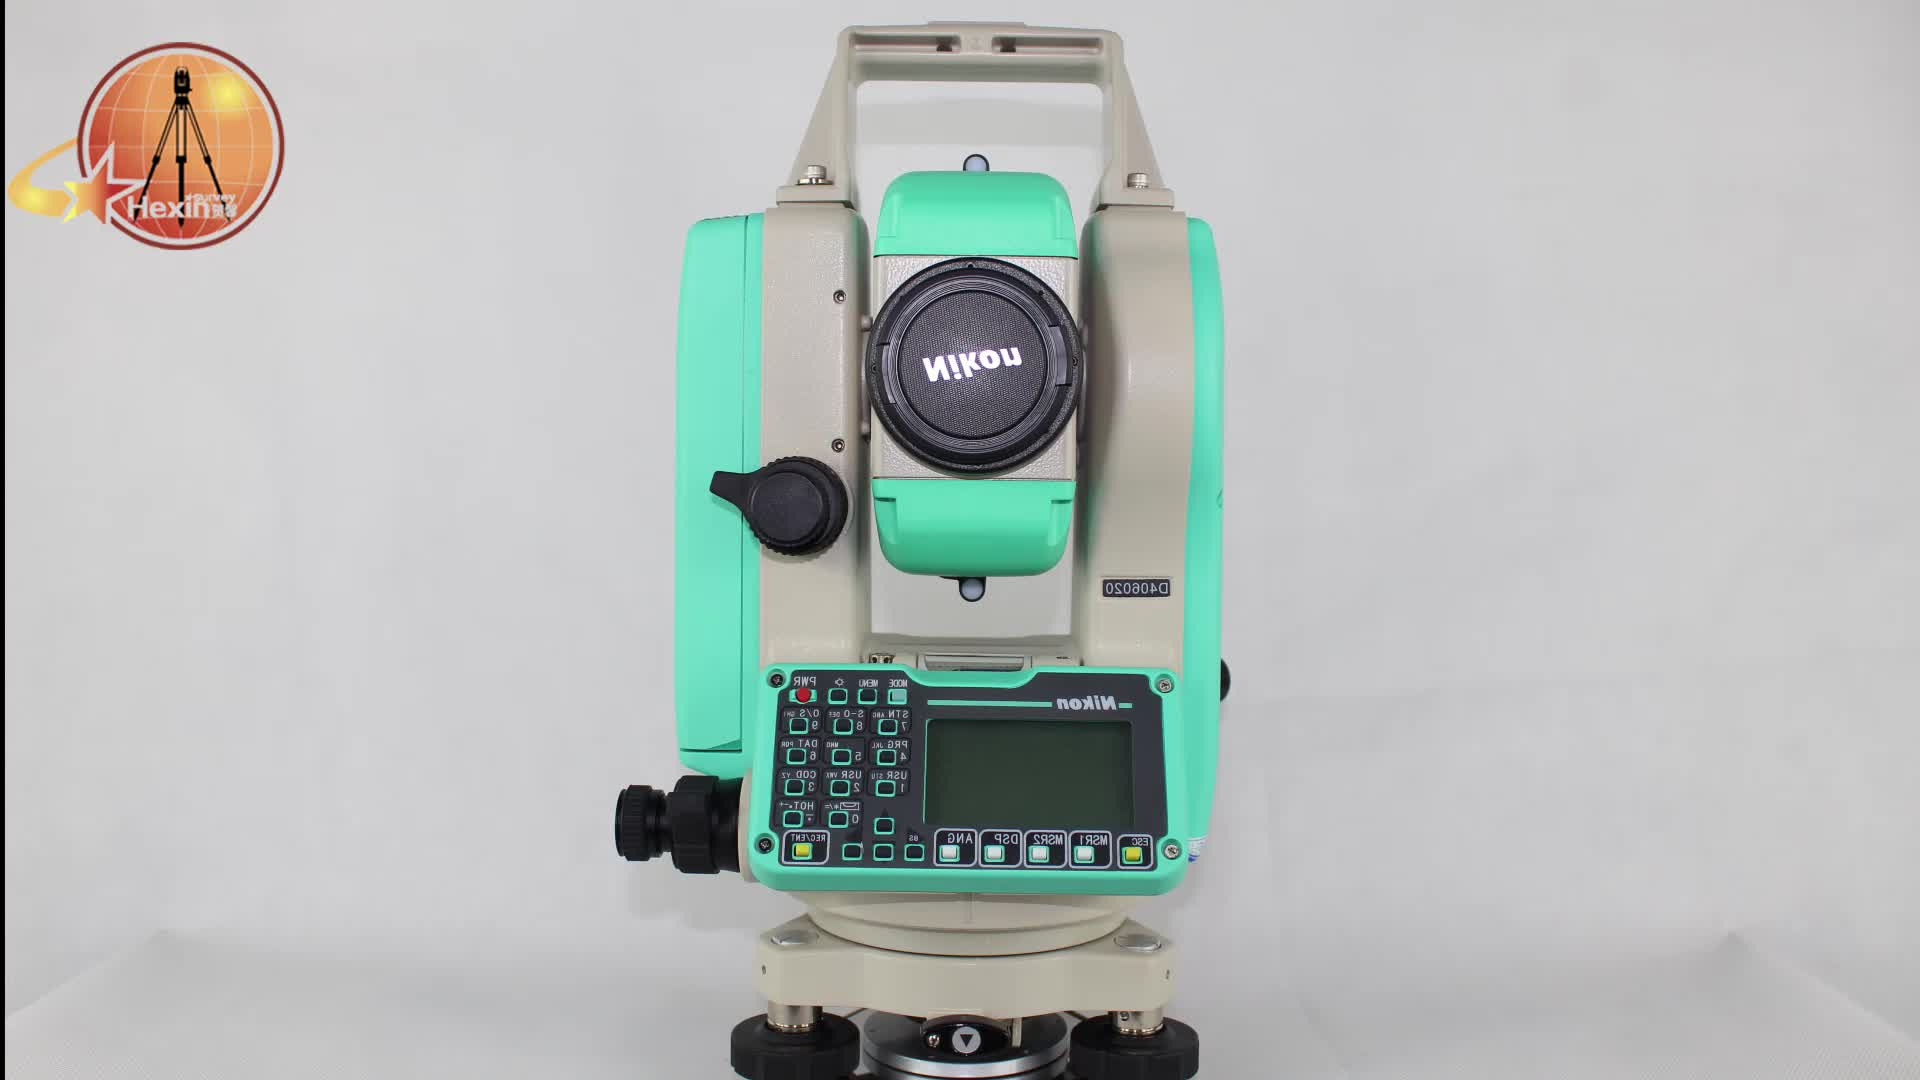 Nikon  NPL - 322 + 5 P surveying robotic total station accessory  with 5 angle accuracy